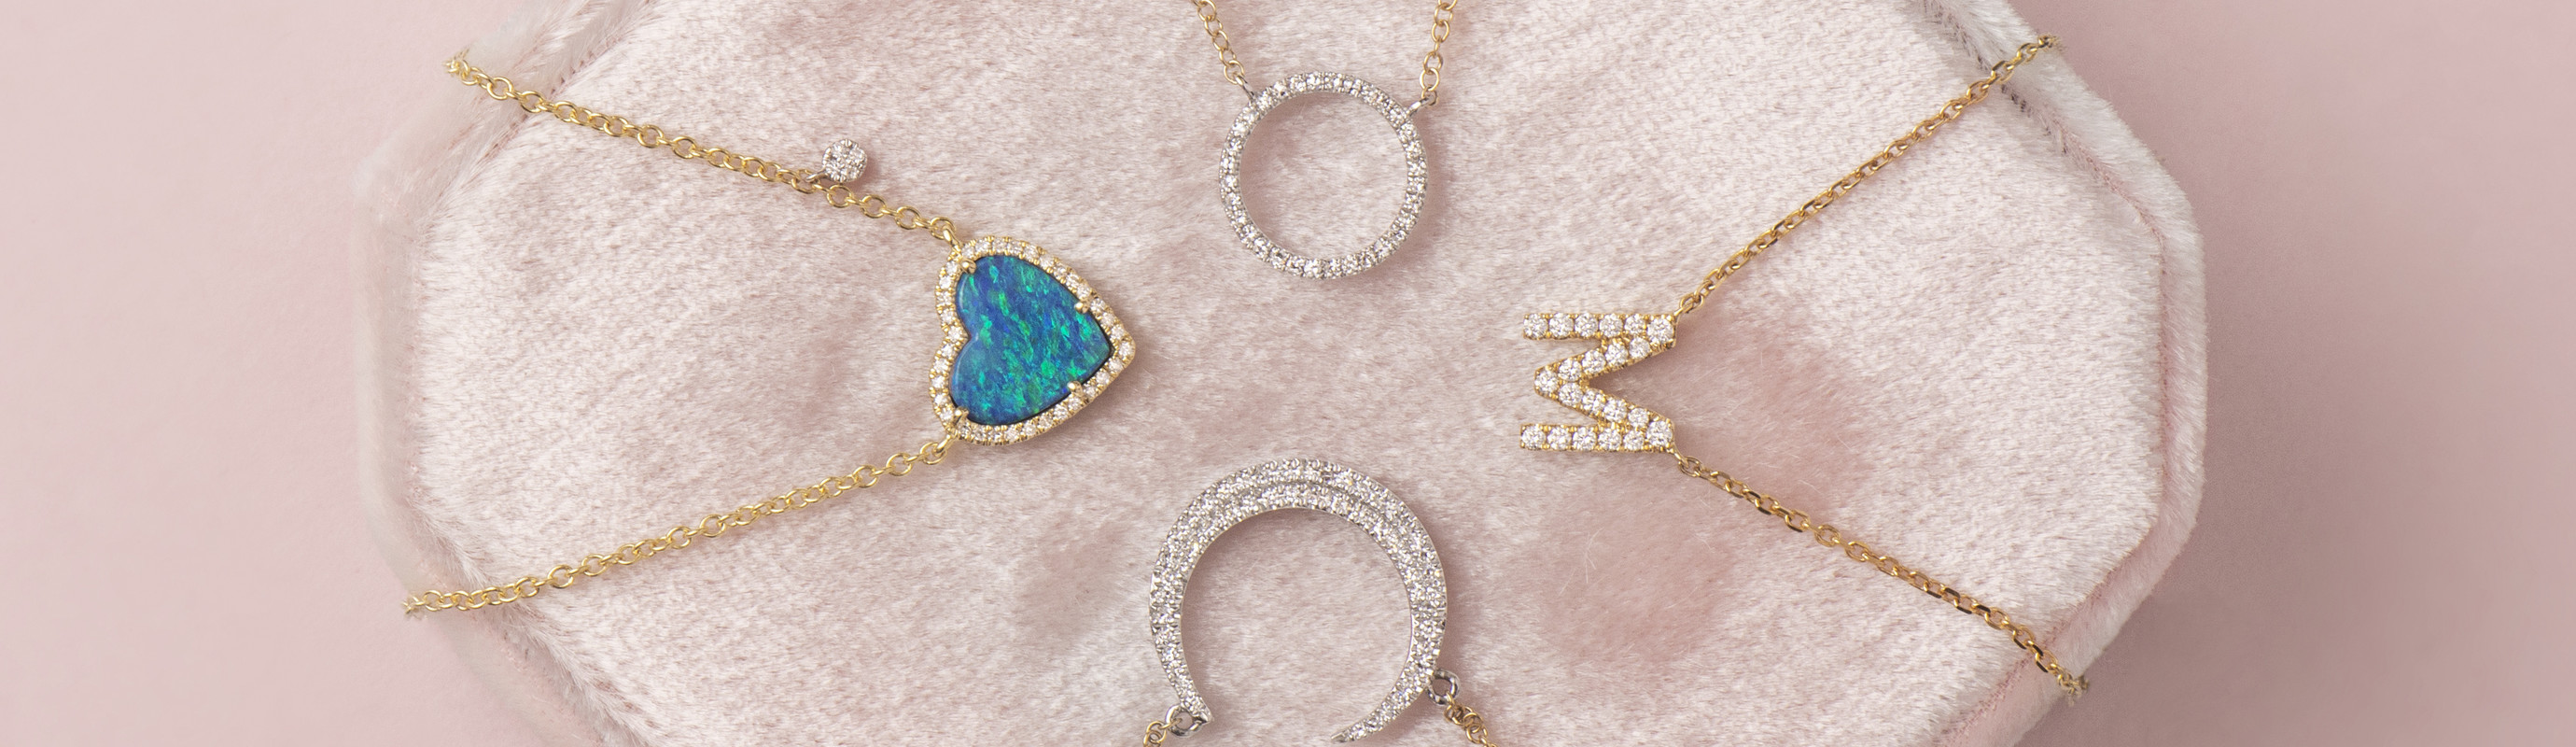 All about pendants